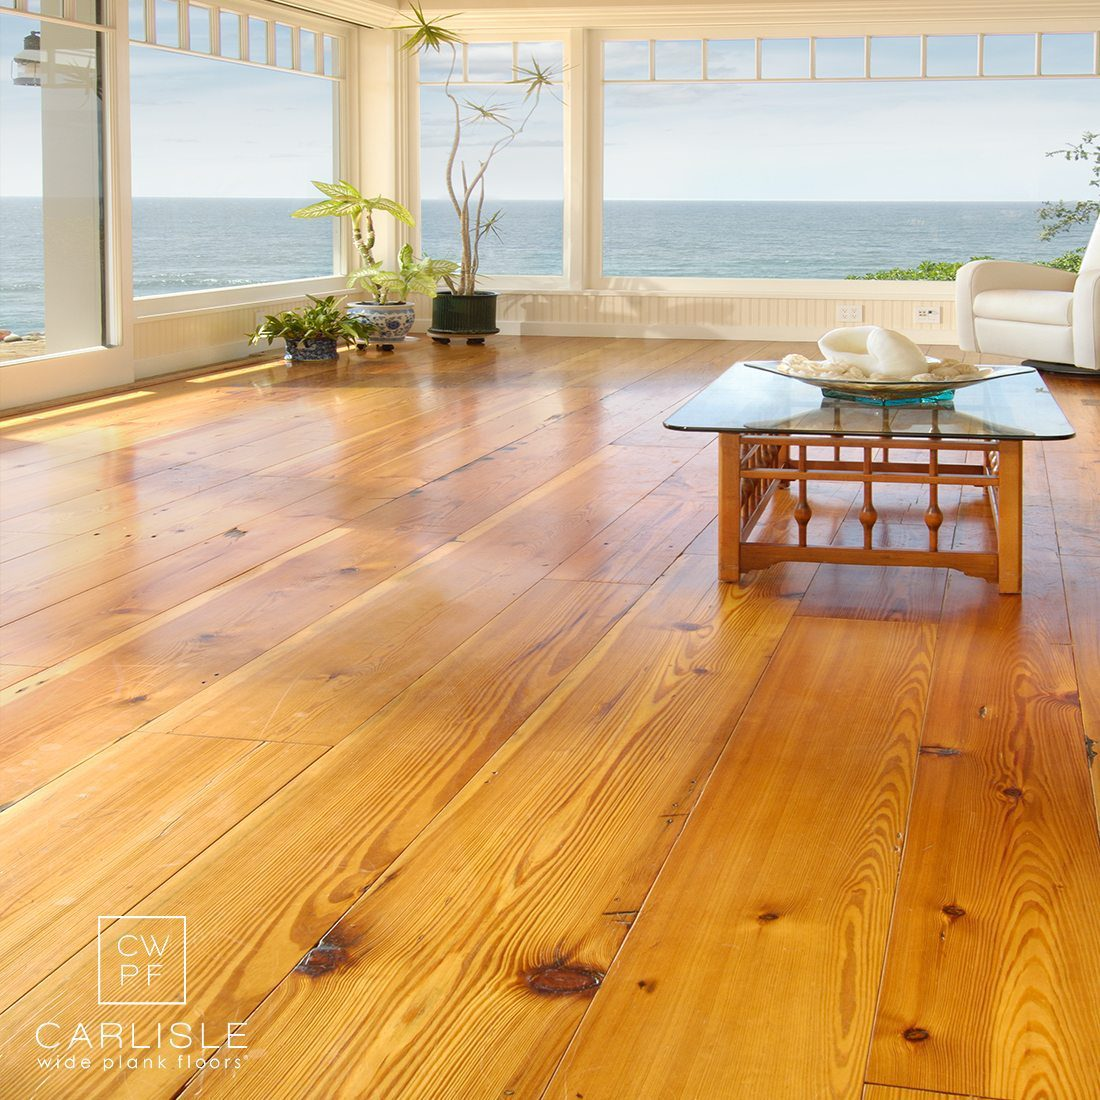 Reclaimed Flooring & Heart PIne Flooring from Carlisle Wide Plank Floors